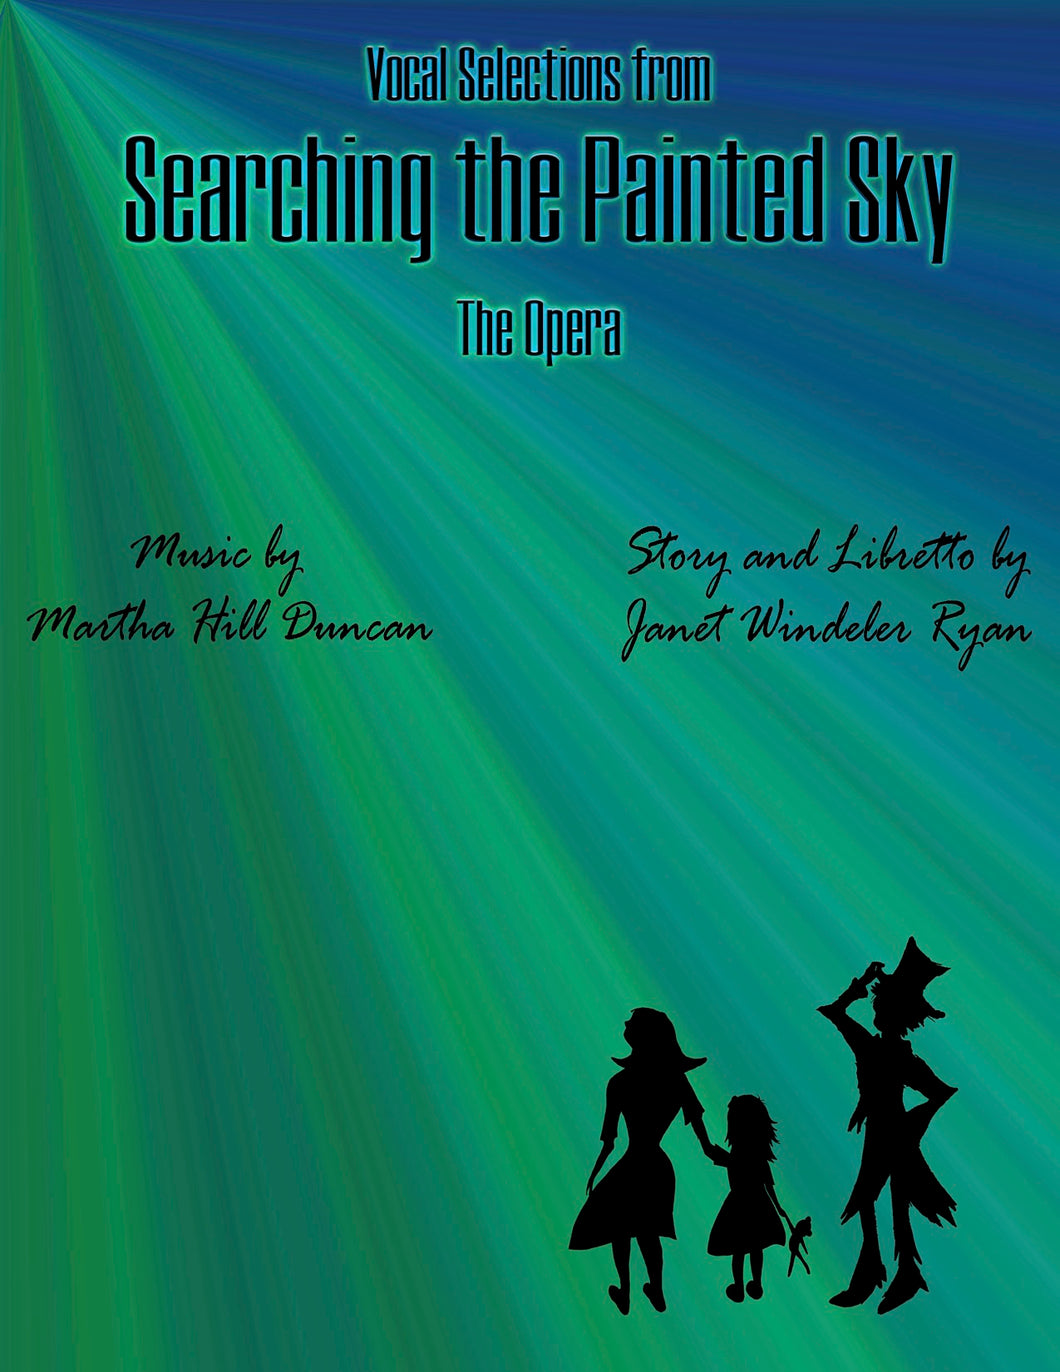 UNDER THE PAINTED SKY - Voice & Piano from SEARCHING THE PAINTED SKY, THE OPERA